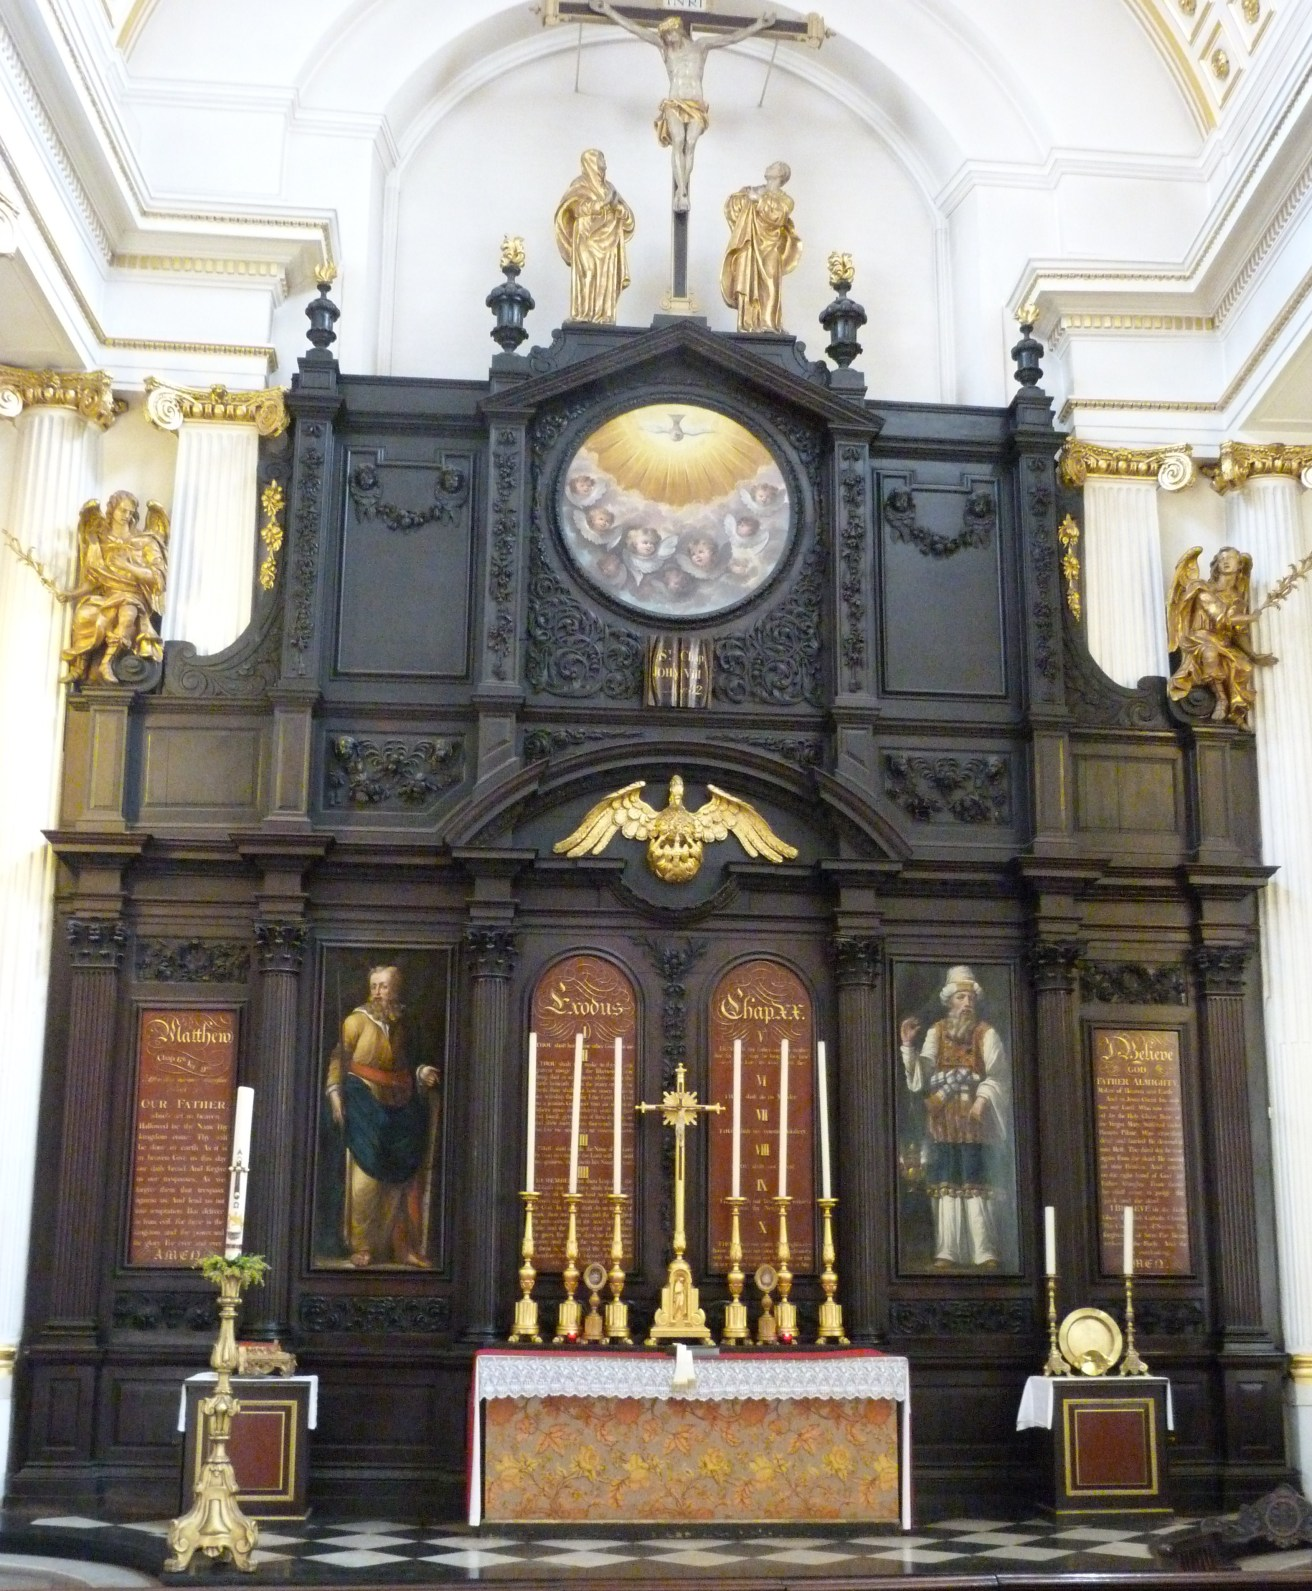 2 - General view of interior of church.JPG